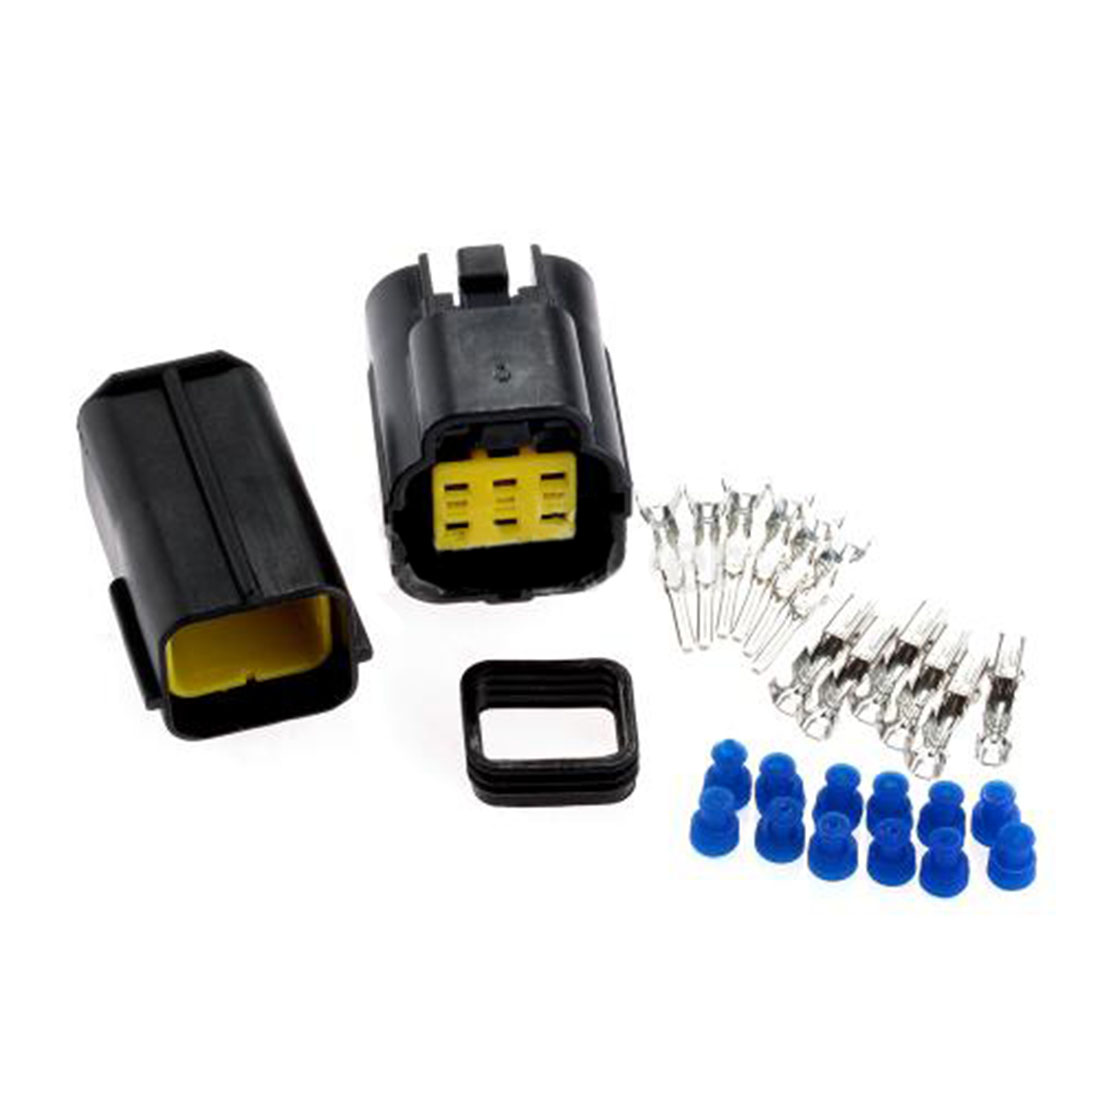 High Quality 1 Kit 6 Pin Way Waterproof Wire Connector Plug Car Auto Sealed Electrical Set For Set Car Truck Boat ect(China (Mainland))